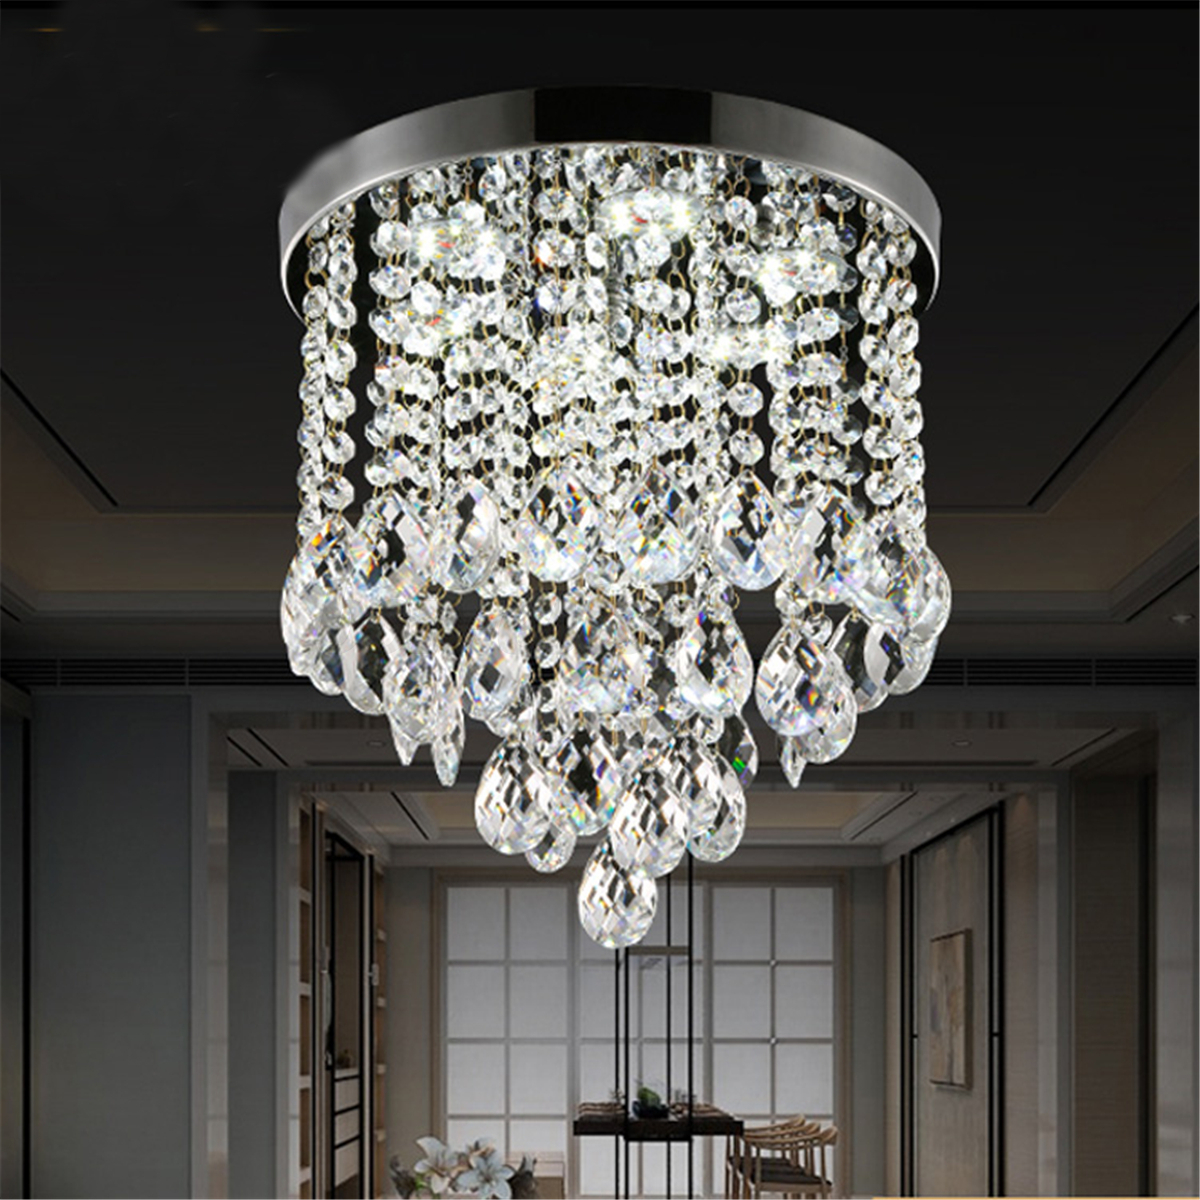 Fixture Lamp Crystal Pendant Chandelier Lamp Light Ceiling Flush Mount